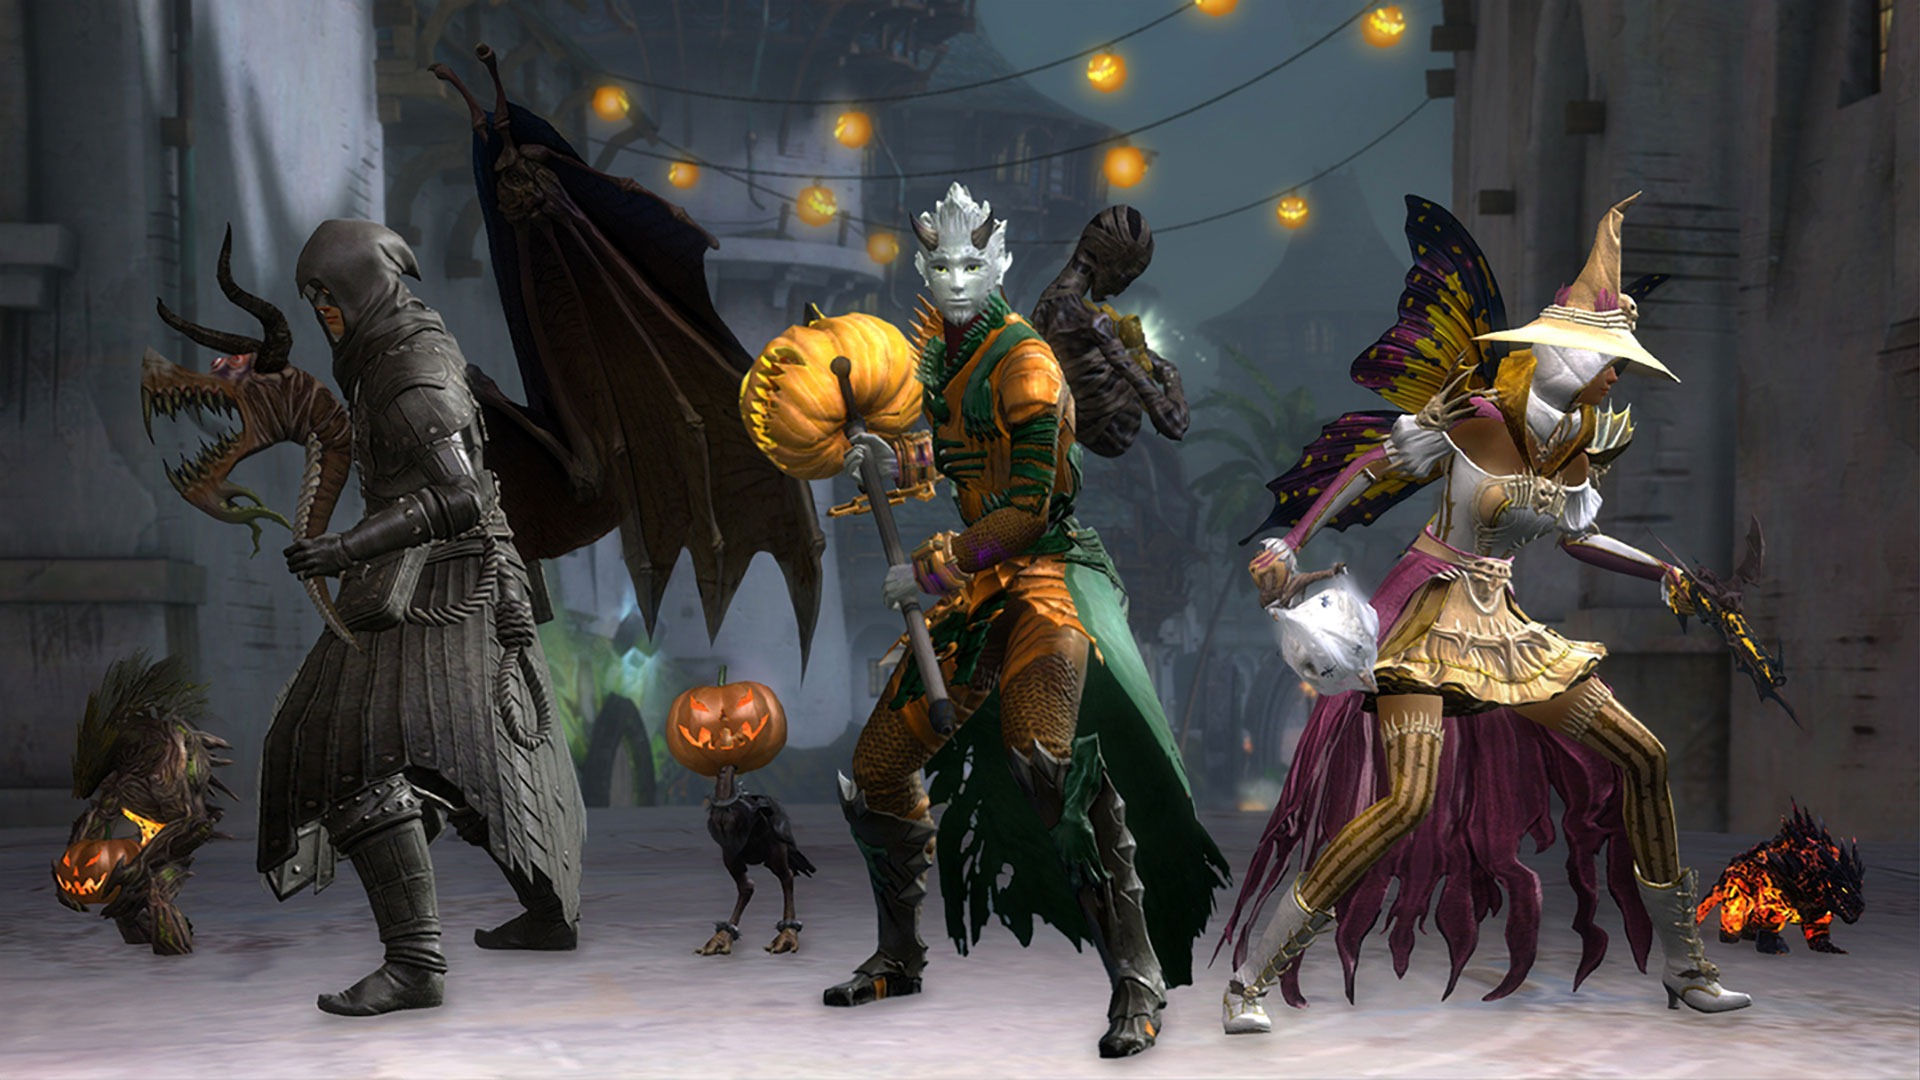 gw2 halloween returns october 23 with new skins - dulfy